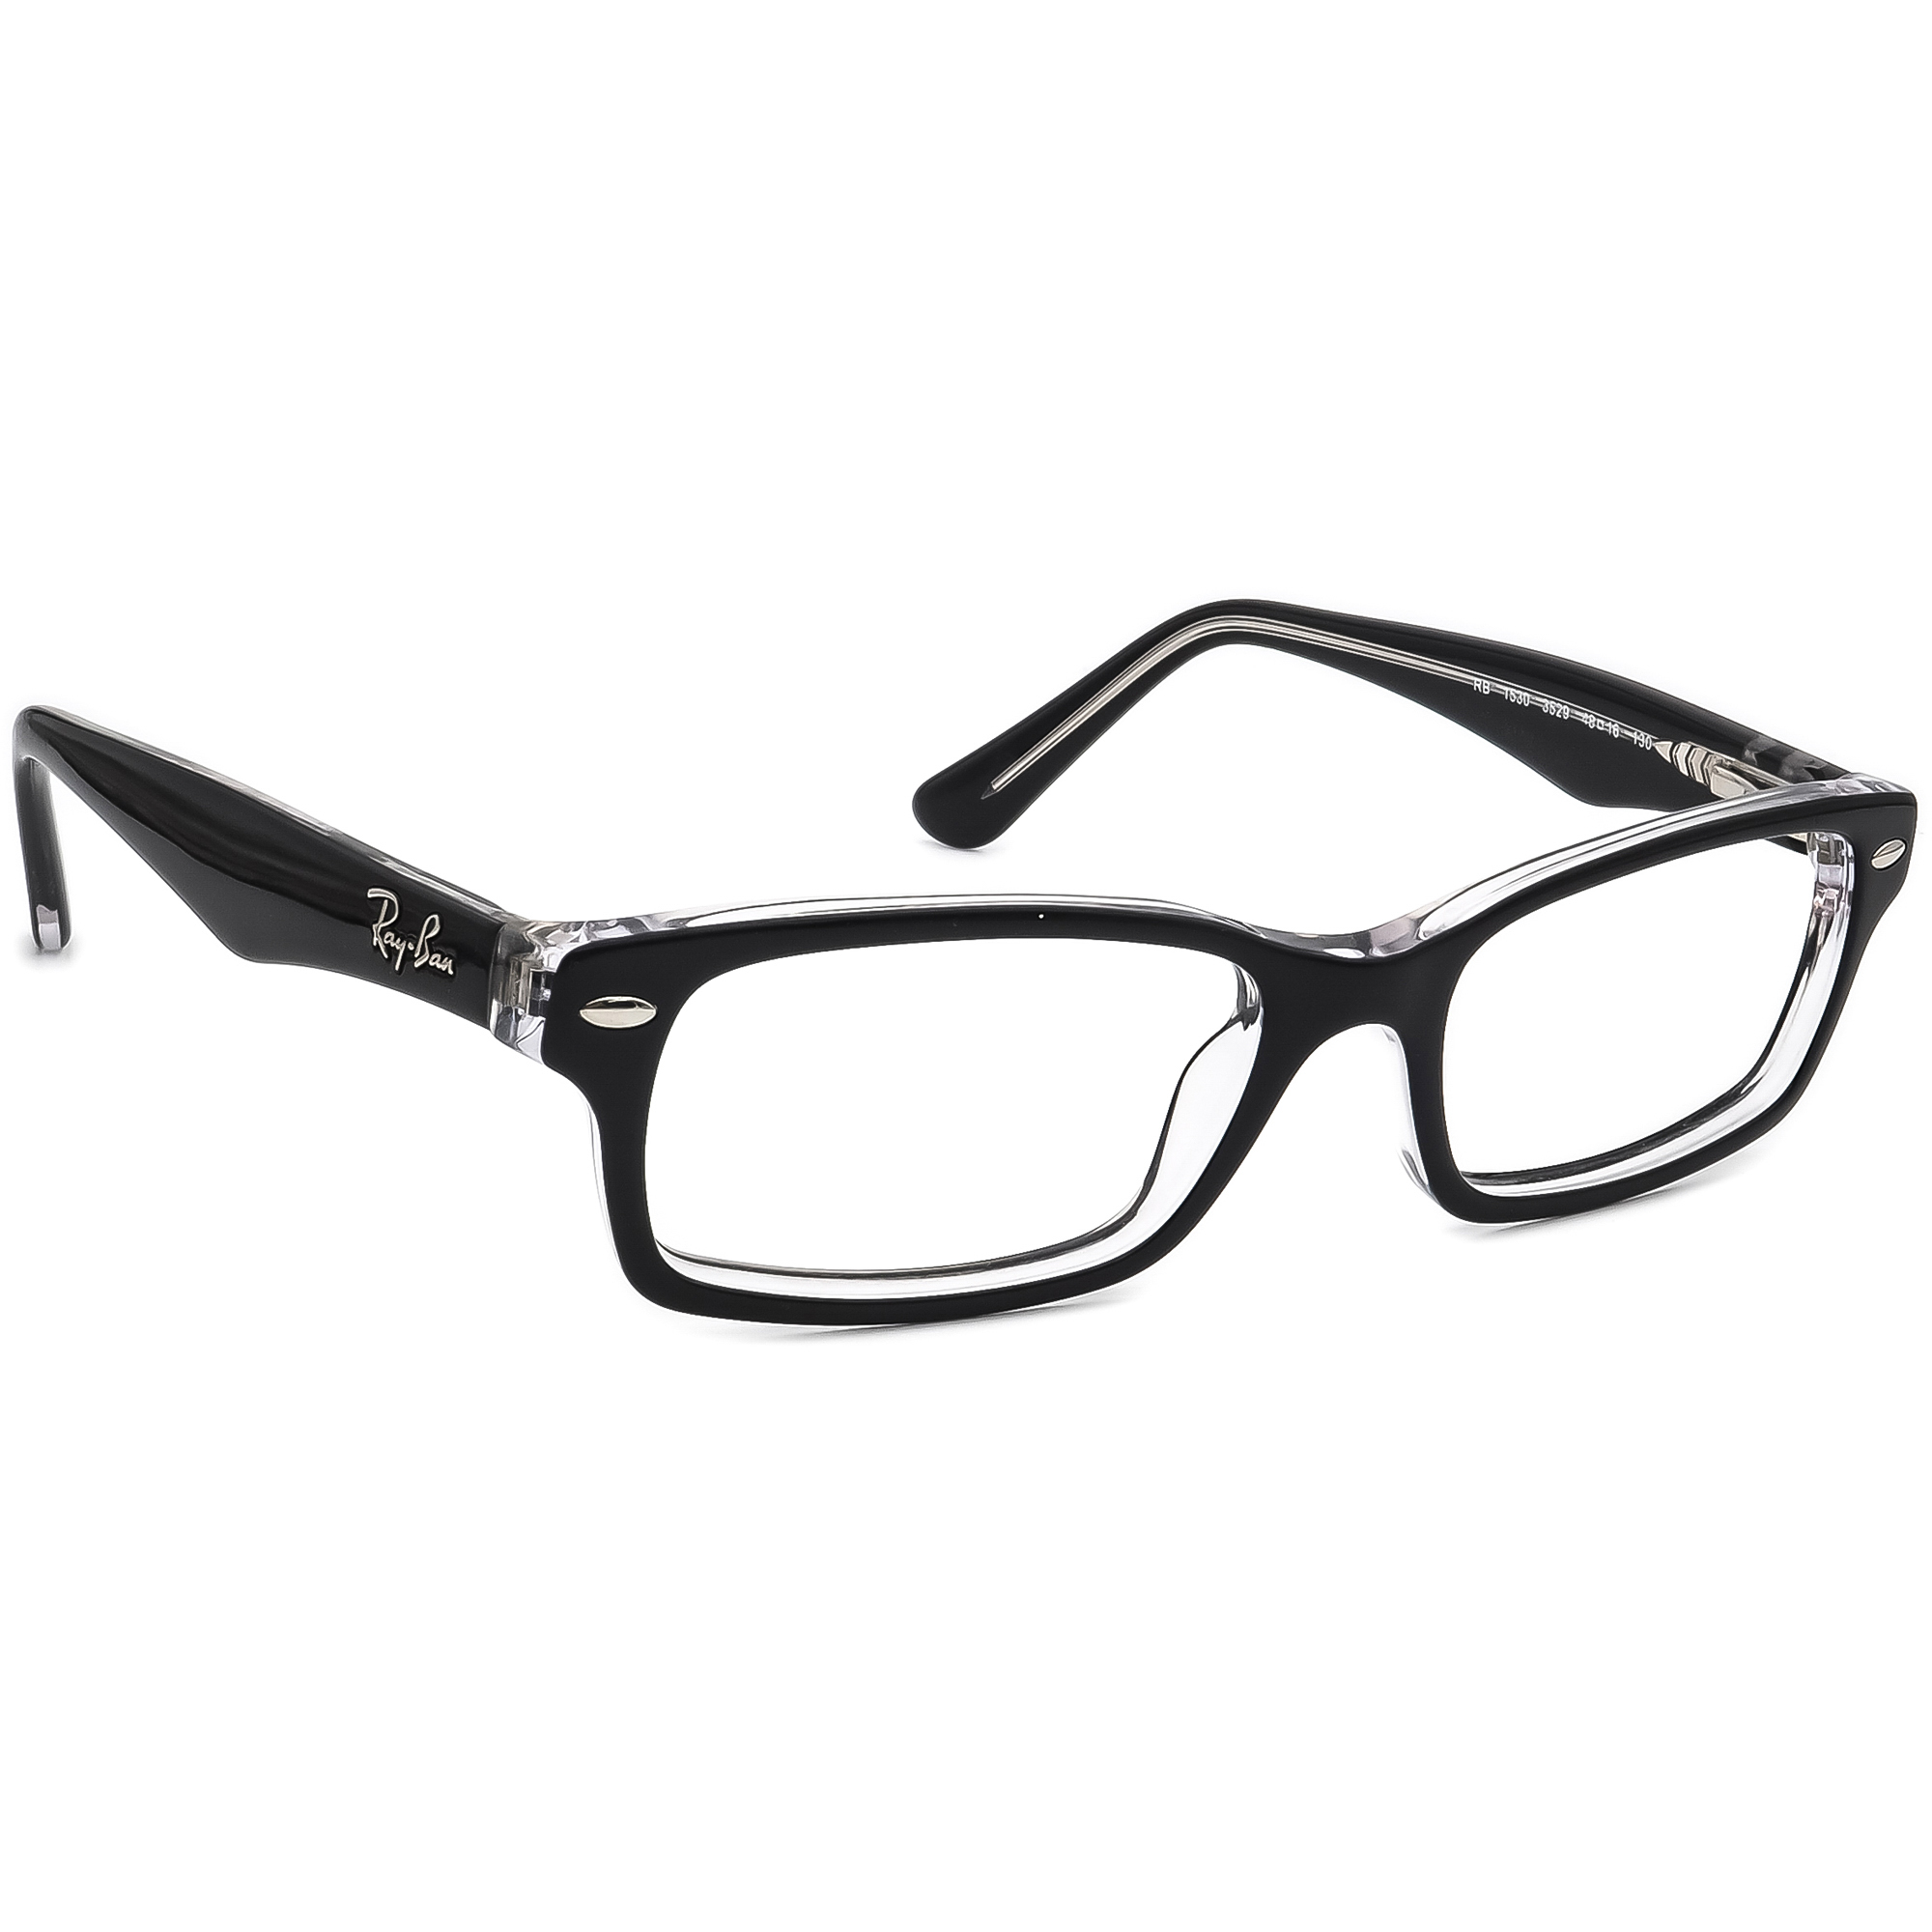 Ray Ban Eyeglasses RB 1530 3529 Black on Clear Horn Rim Frame 48[]16 130 Small